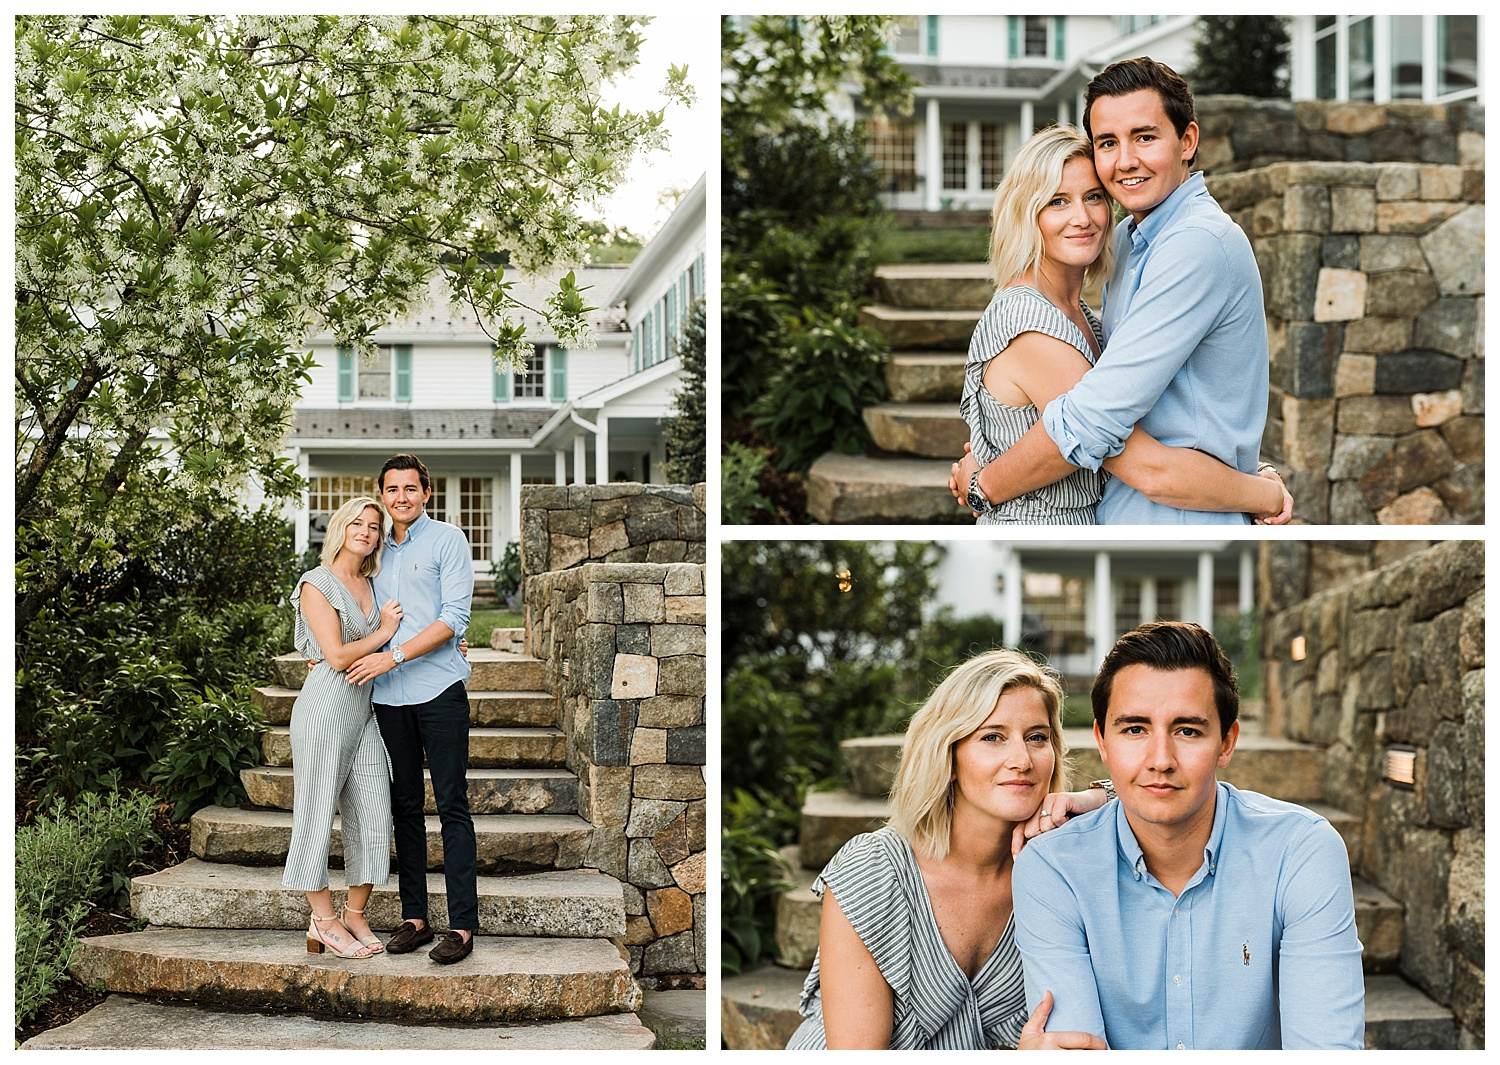 Hunterdon_County_Engagement_Session_Apollo_Fields07.jpg